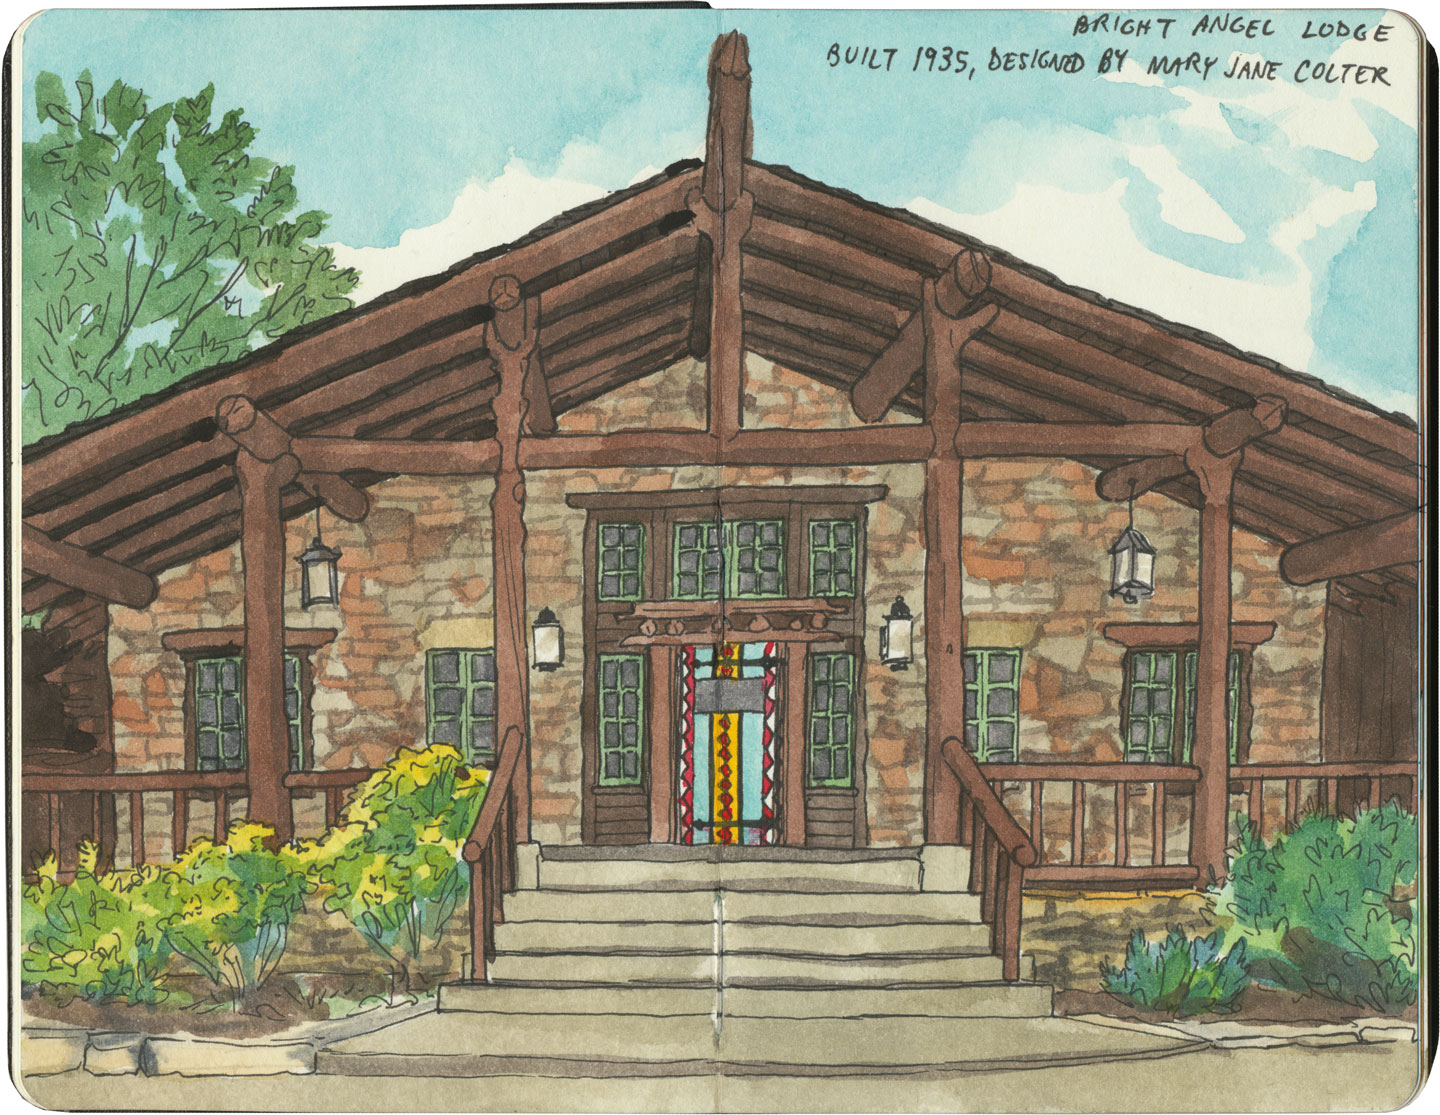 Grand Canyon sketch by Chandler O'Leary featuring Bright Angel Lodge, a former Harvey House